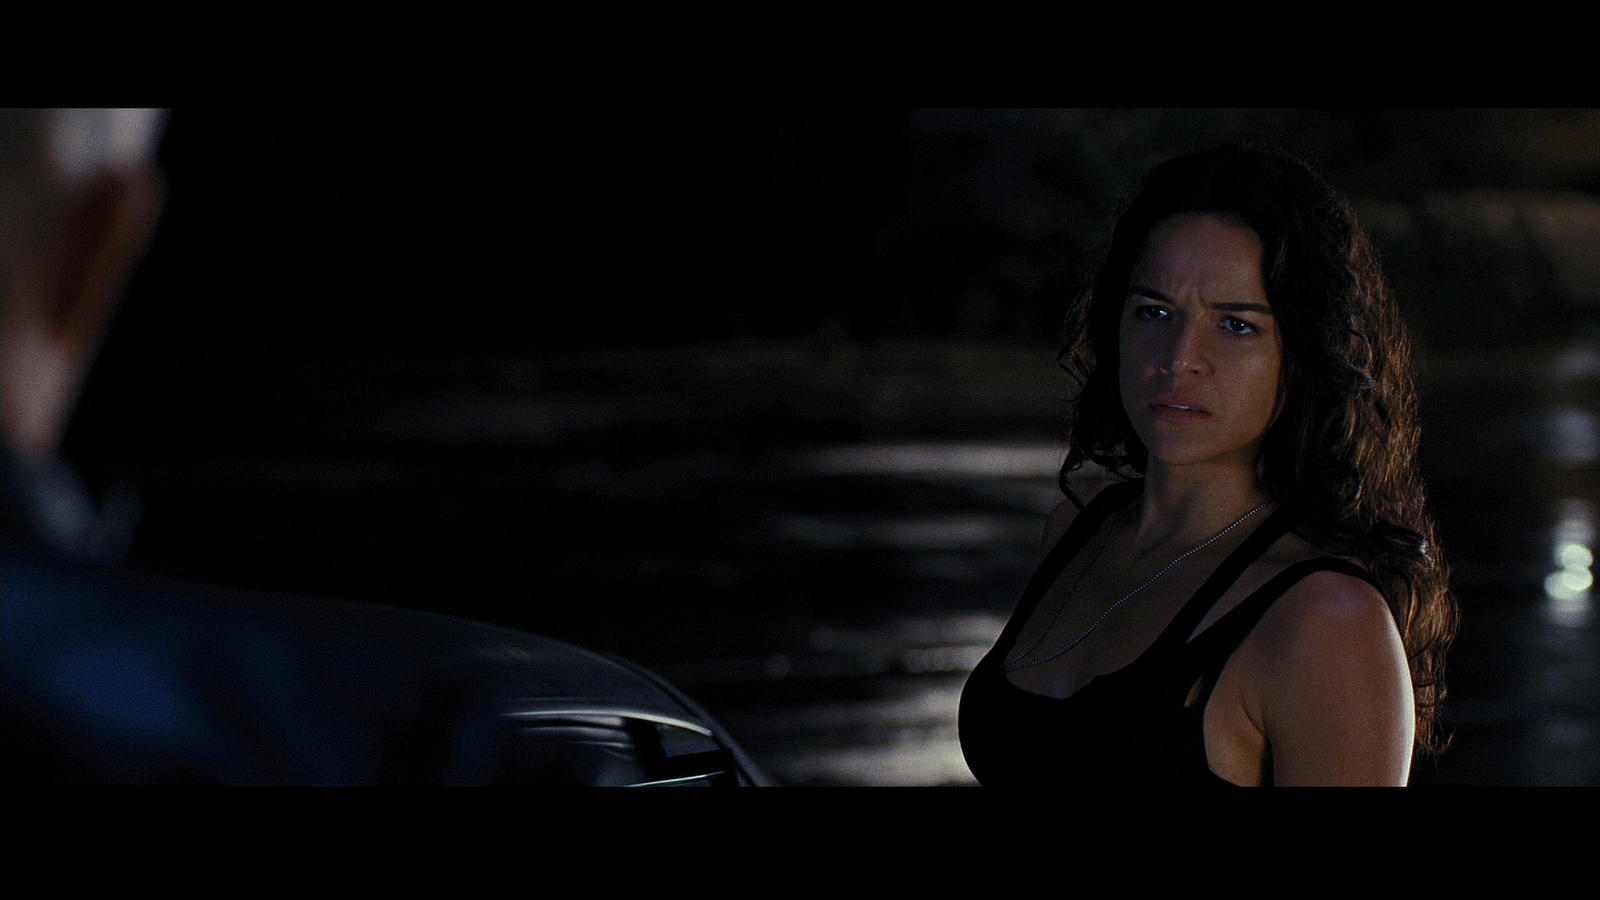 letty fast and furious 6 images. Black Bedroom Furniture Sets. Home Design Ideas